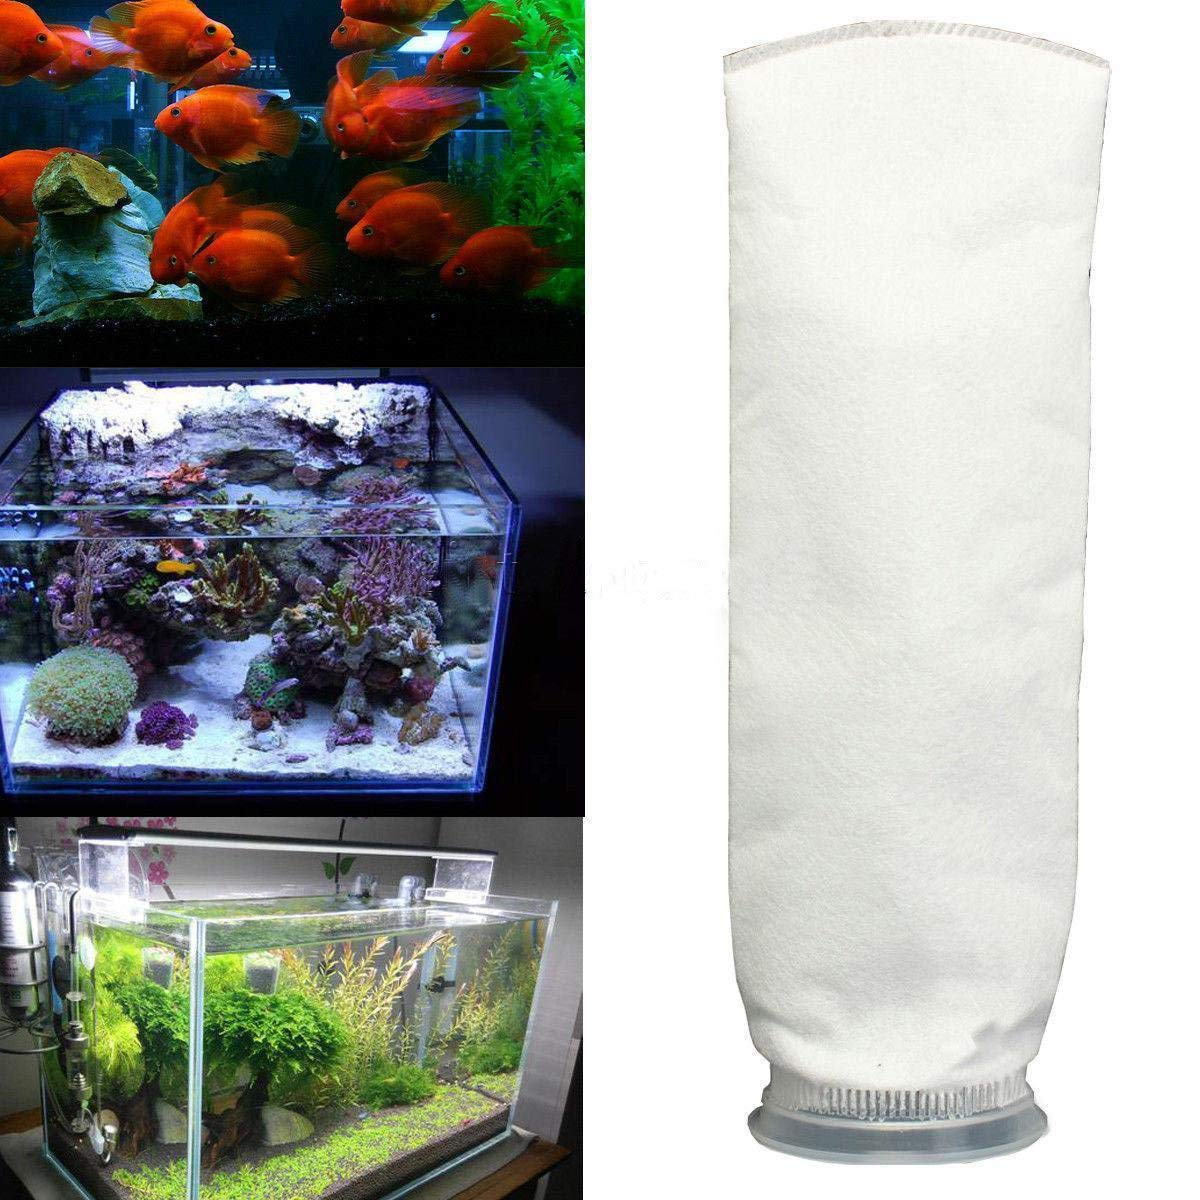 gloednApple Aquarium Reef Fish Tank Filter Sock Bag Holder Suck Replacement Sump 150/200 Micron